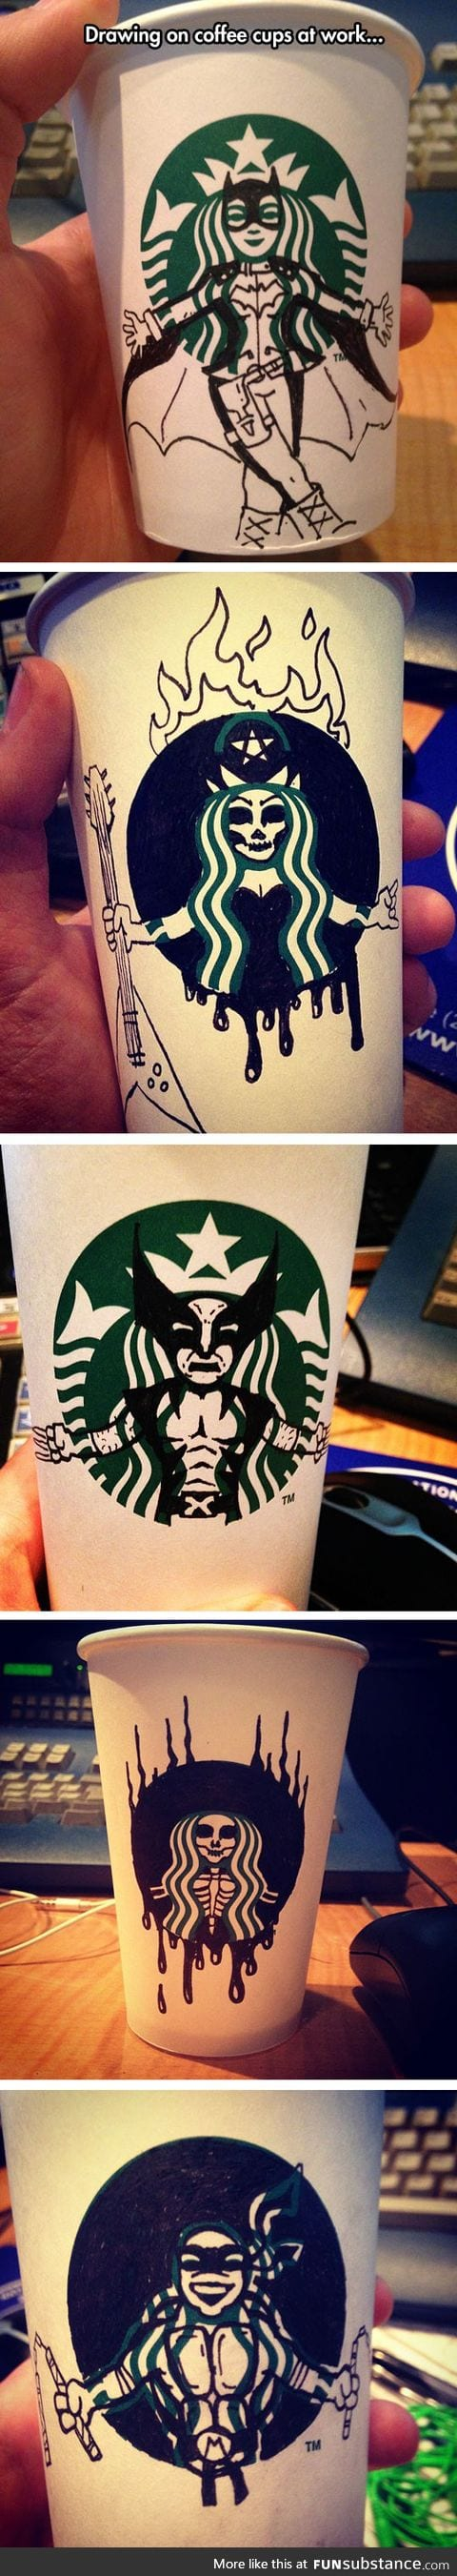 Starbucks should pay him for these awesome designs